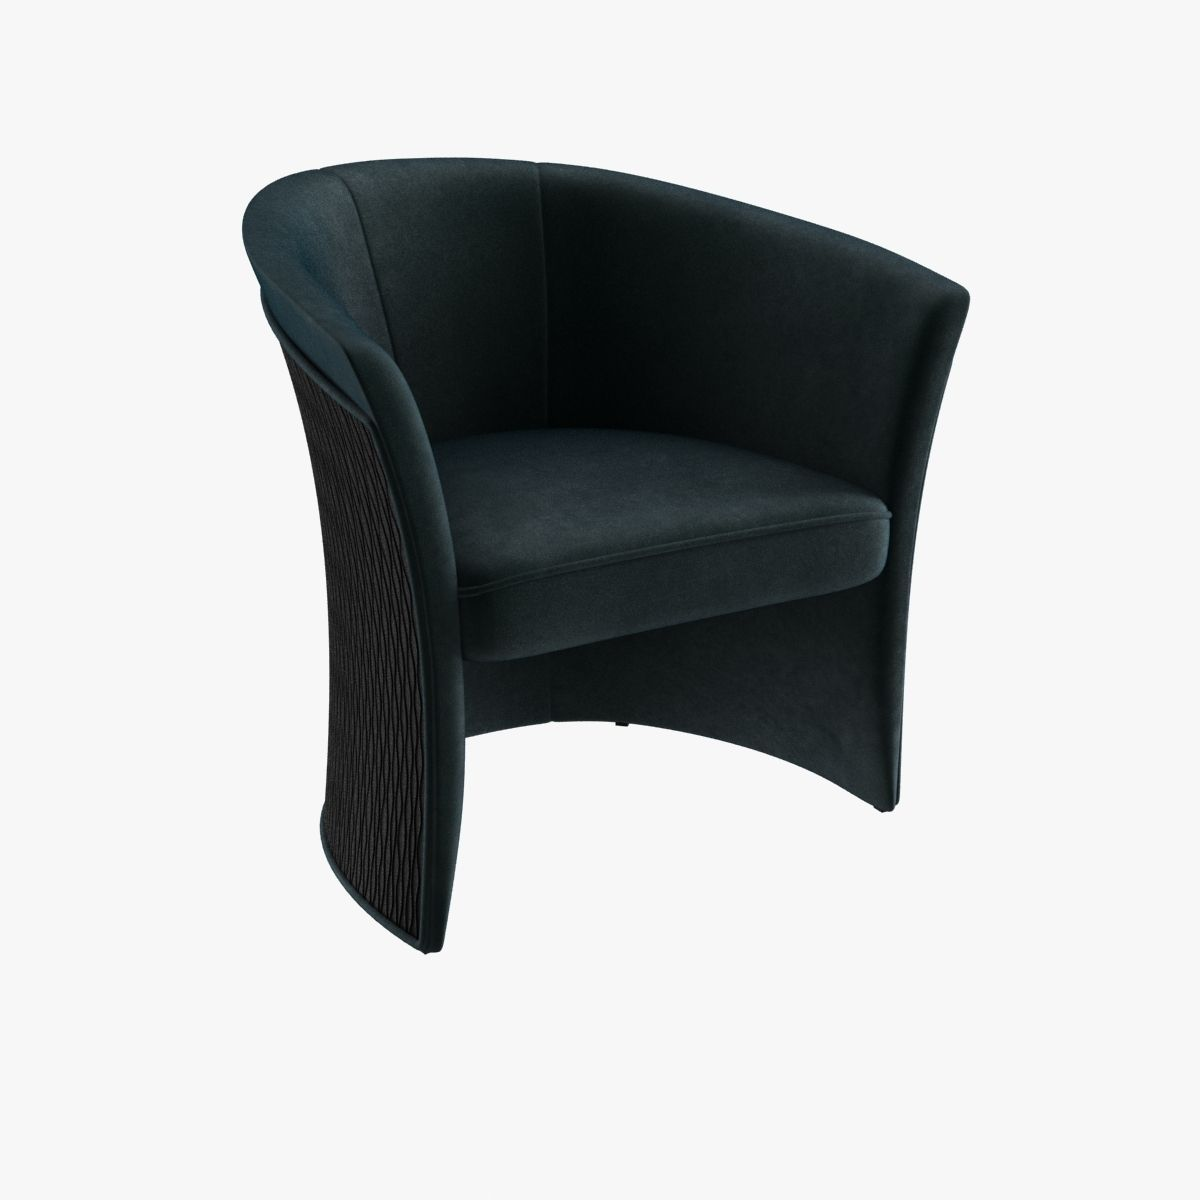 Chair Enigma By Koket 3d Model Max Obj 3ds Fbx